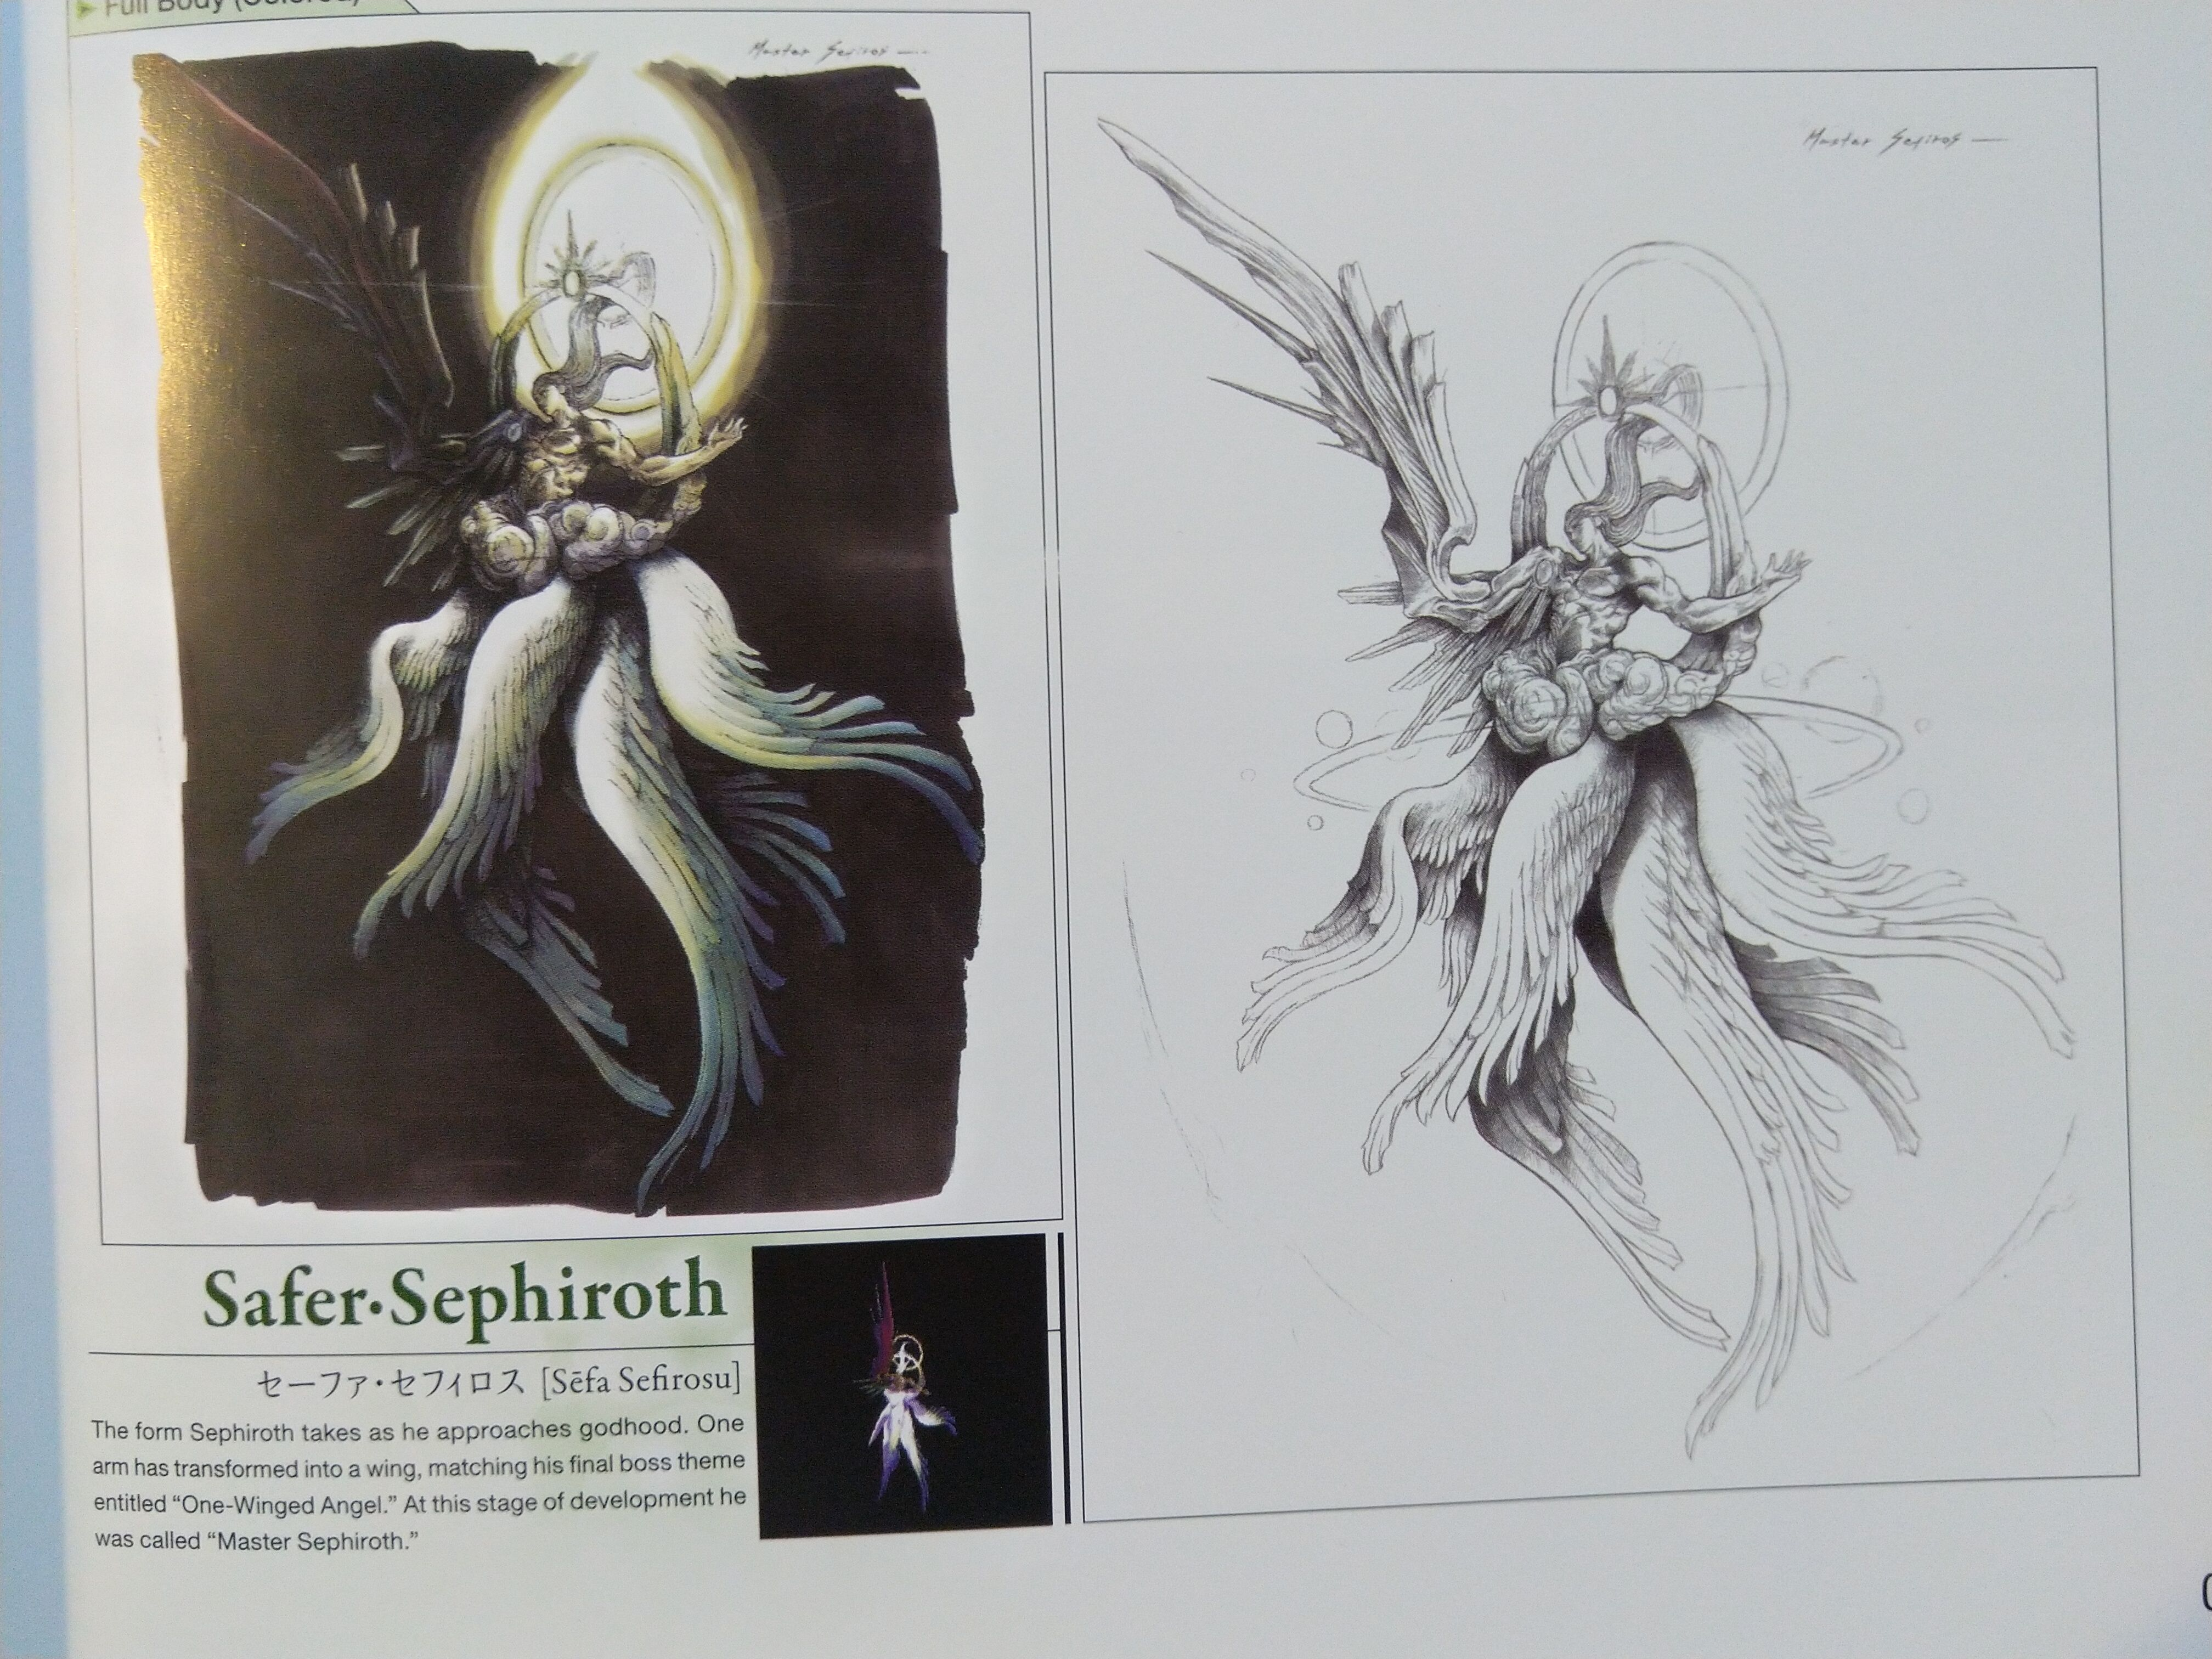 Safer Sephiroth Https Www Gamestarter Co Uk Final